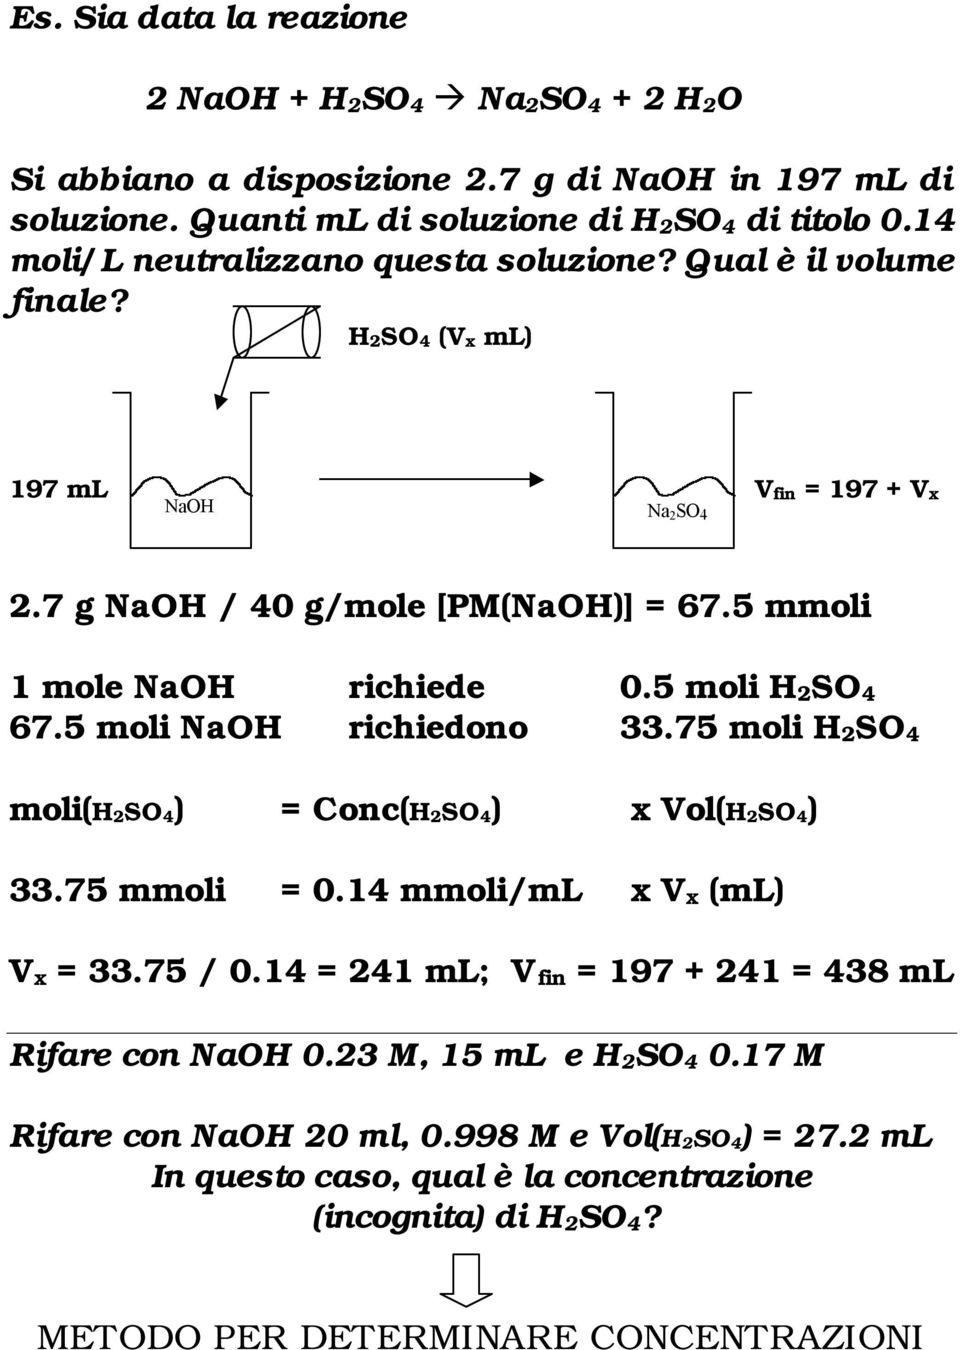 5 mmoli 1 mole NaOH richiede 0.5 moli H2SO4 67.5 moli NaOH richiedono 33.75 moli H2SO4 moli(h2so4) = Conc(H2SO4) x Vol(H2SO4) 33.75 mmoli = 0.14 mmoli/ml x Vx (ml) Vx = 33.75 / 0.